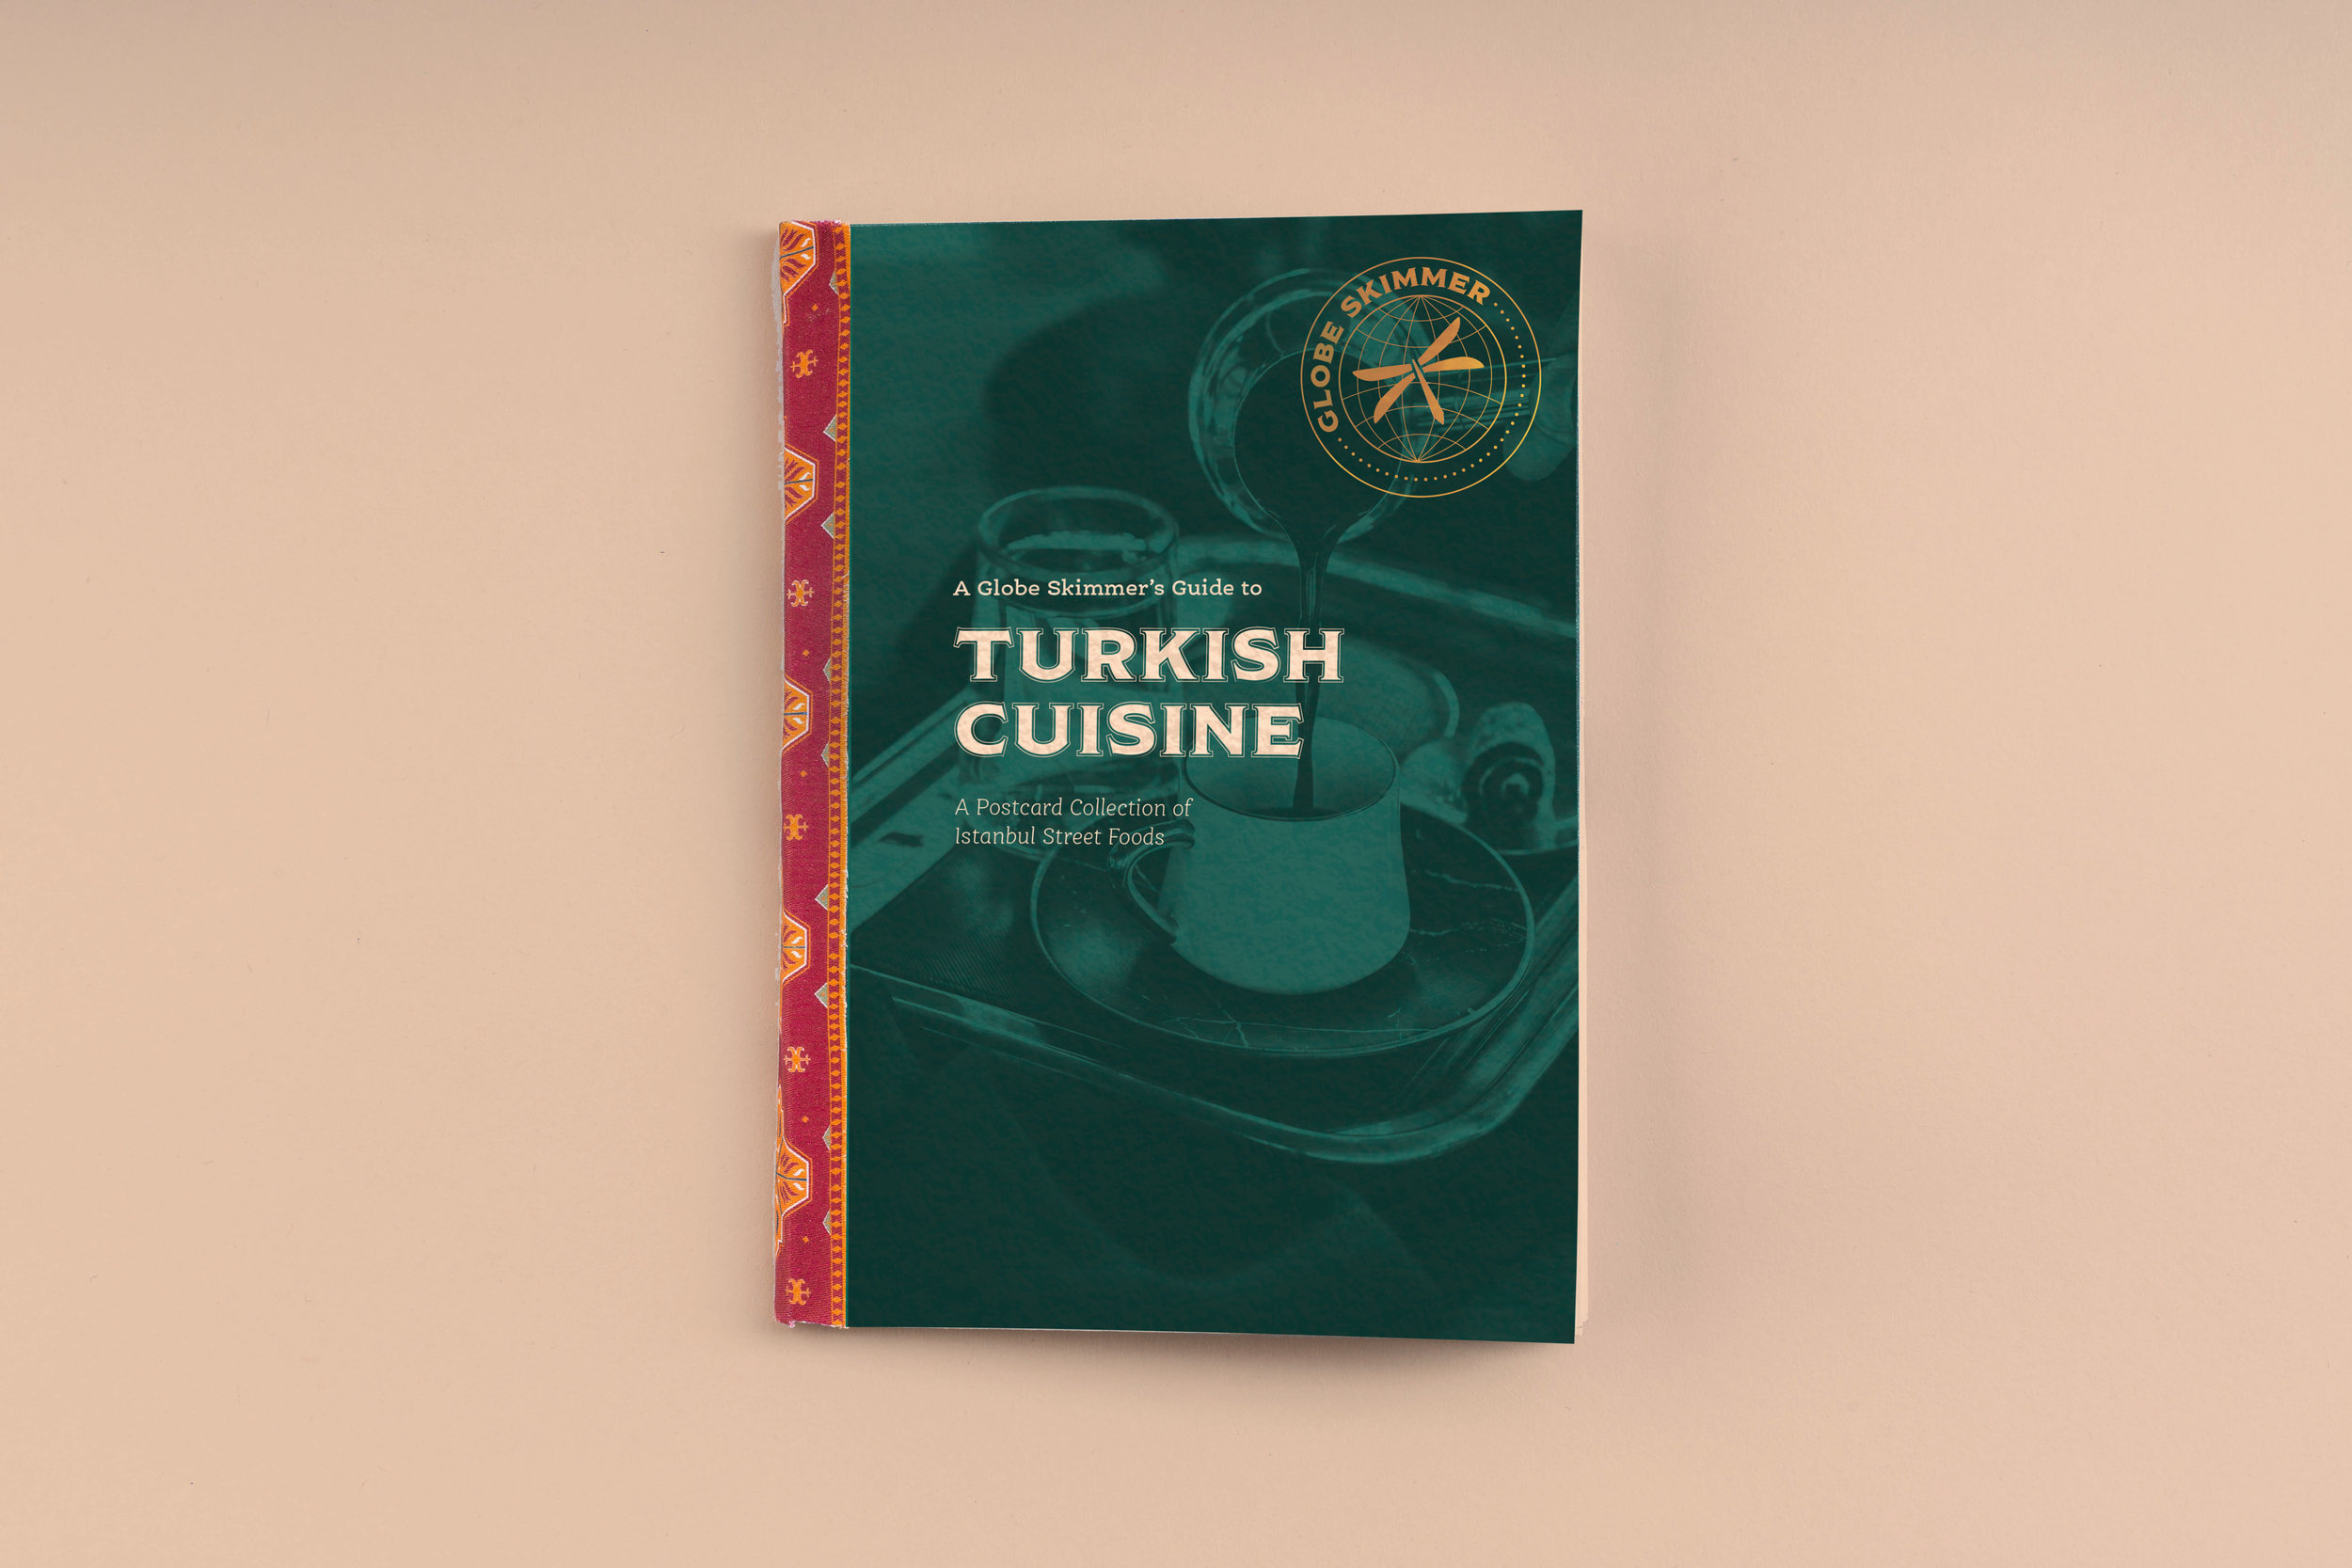 turkish-cuisine-1.jpg